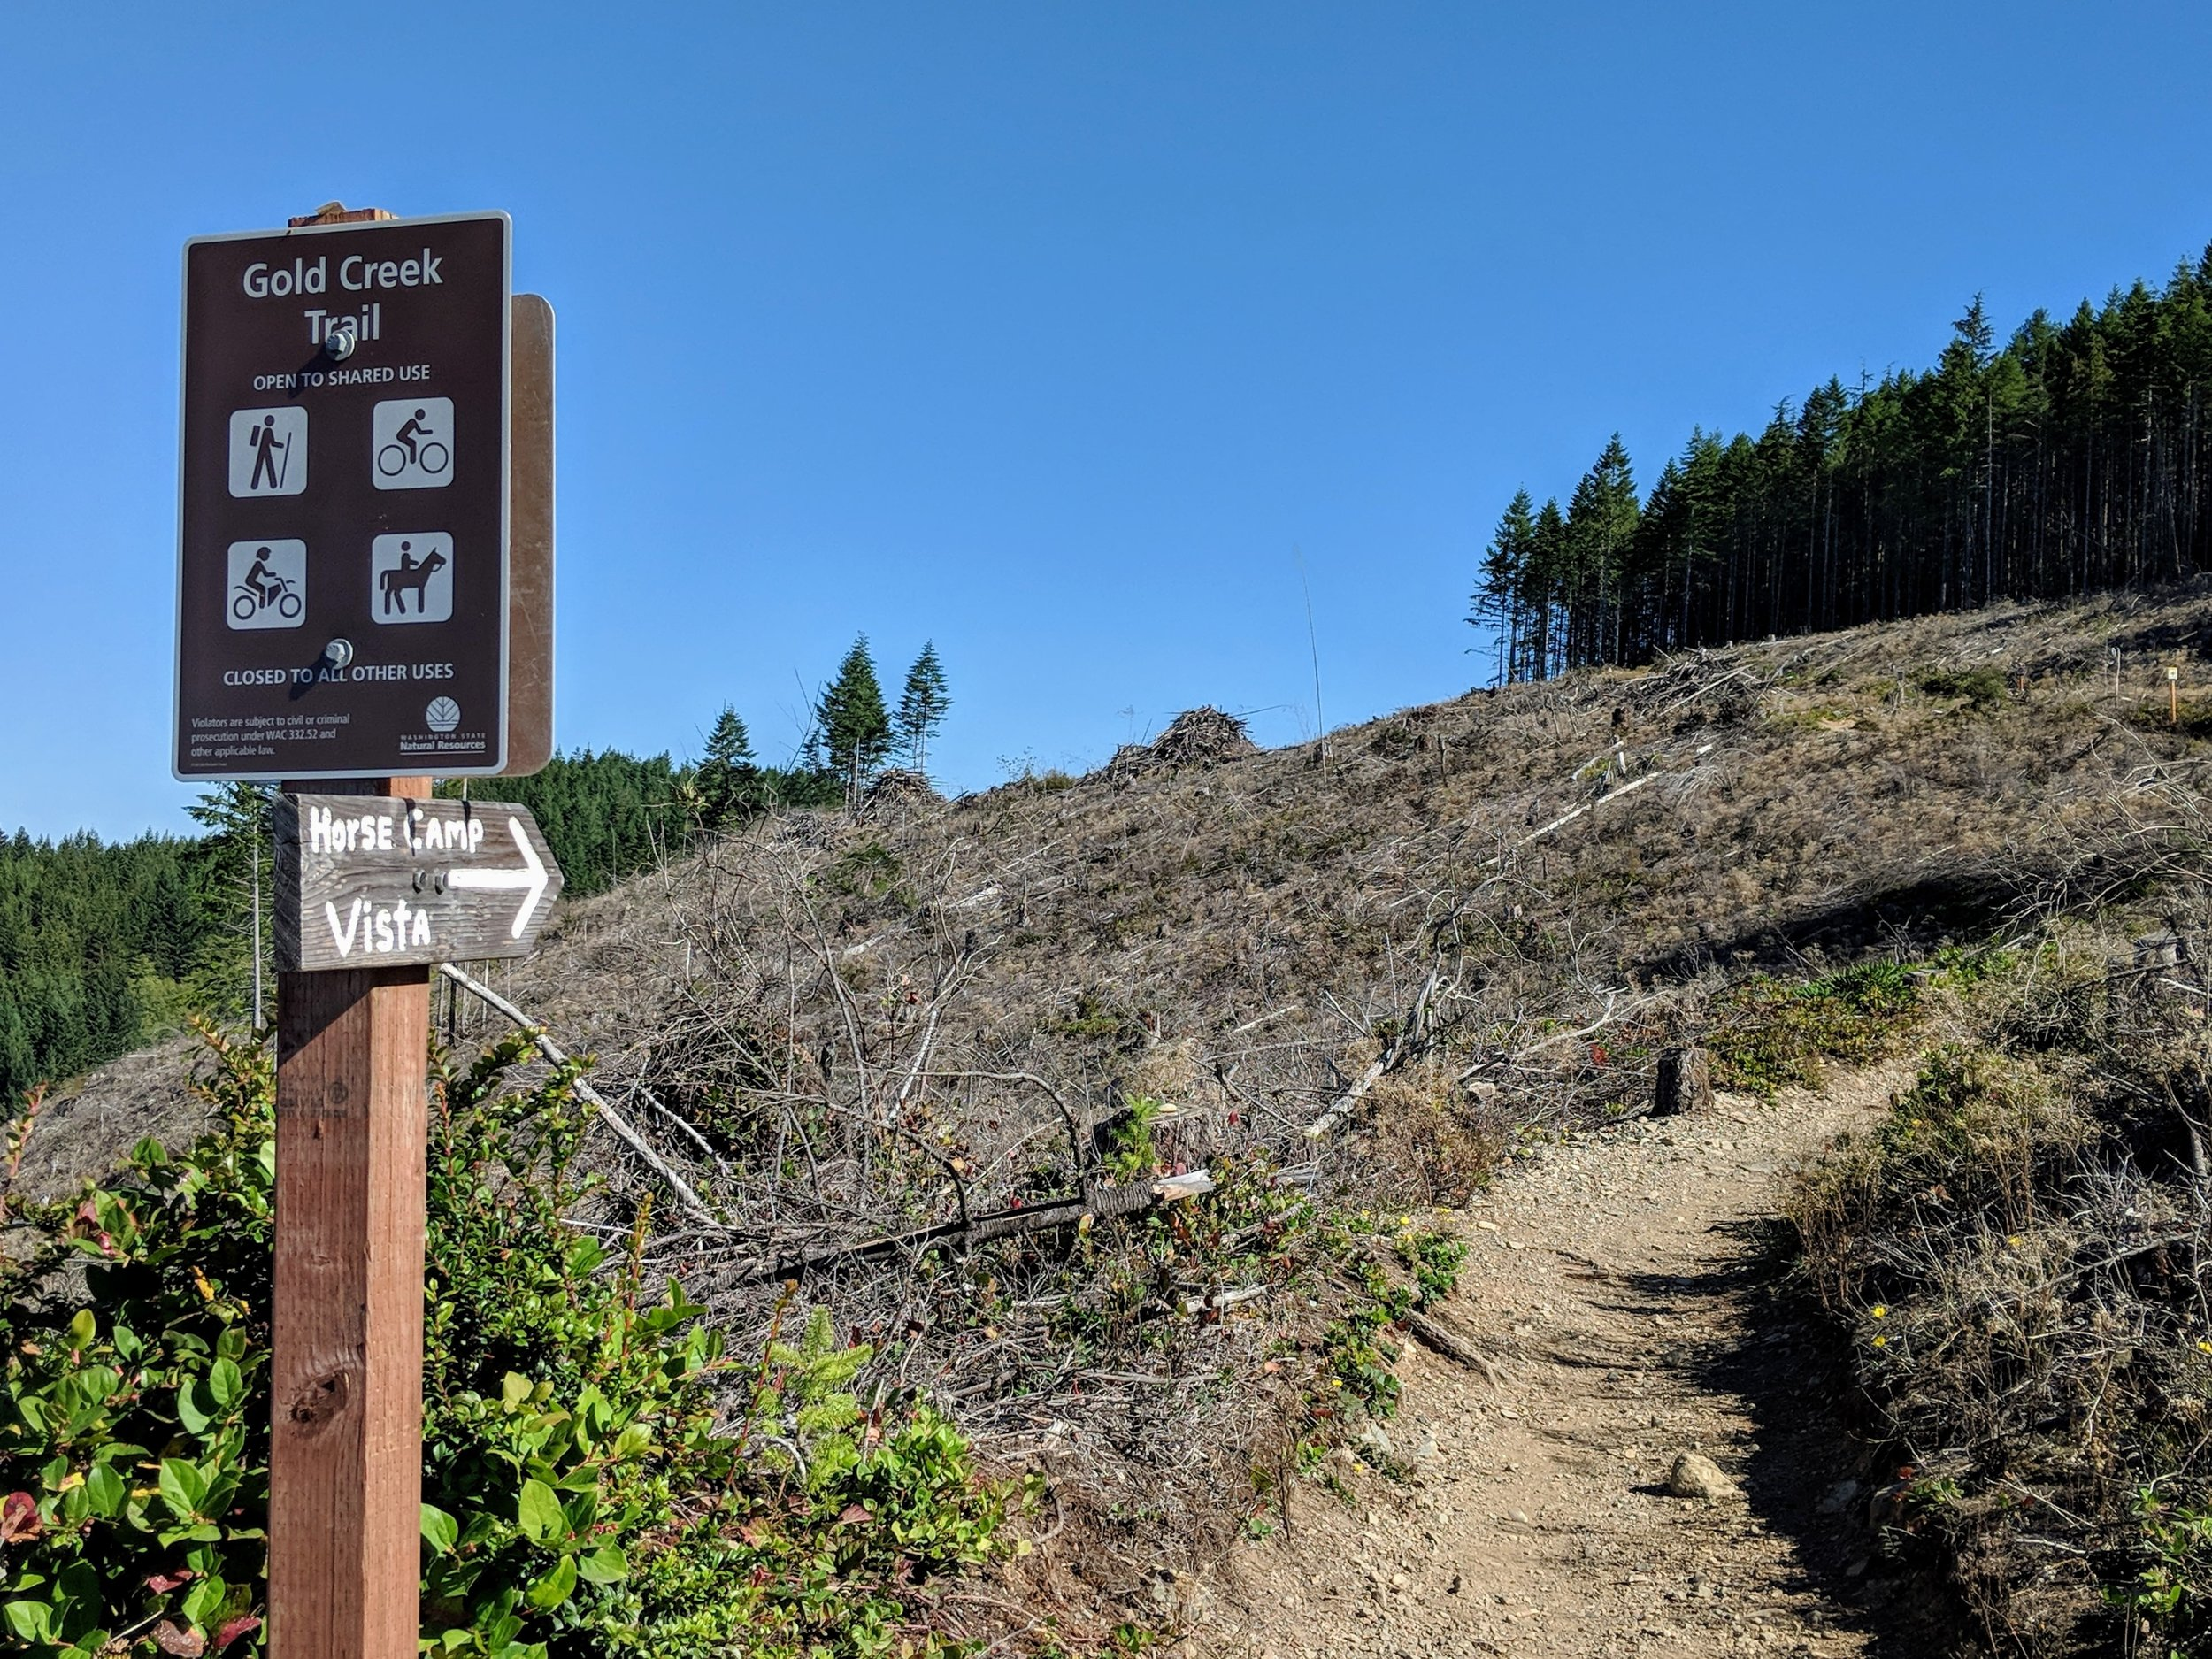 Trail signage on Gold Creek Trail